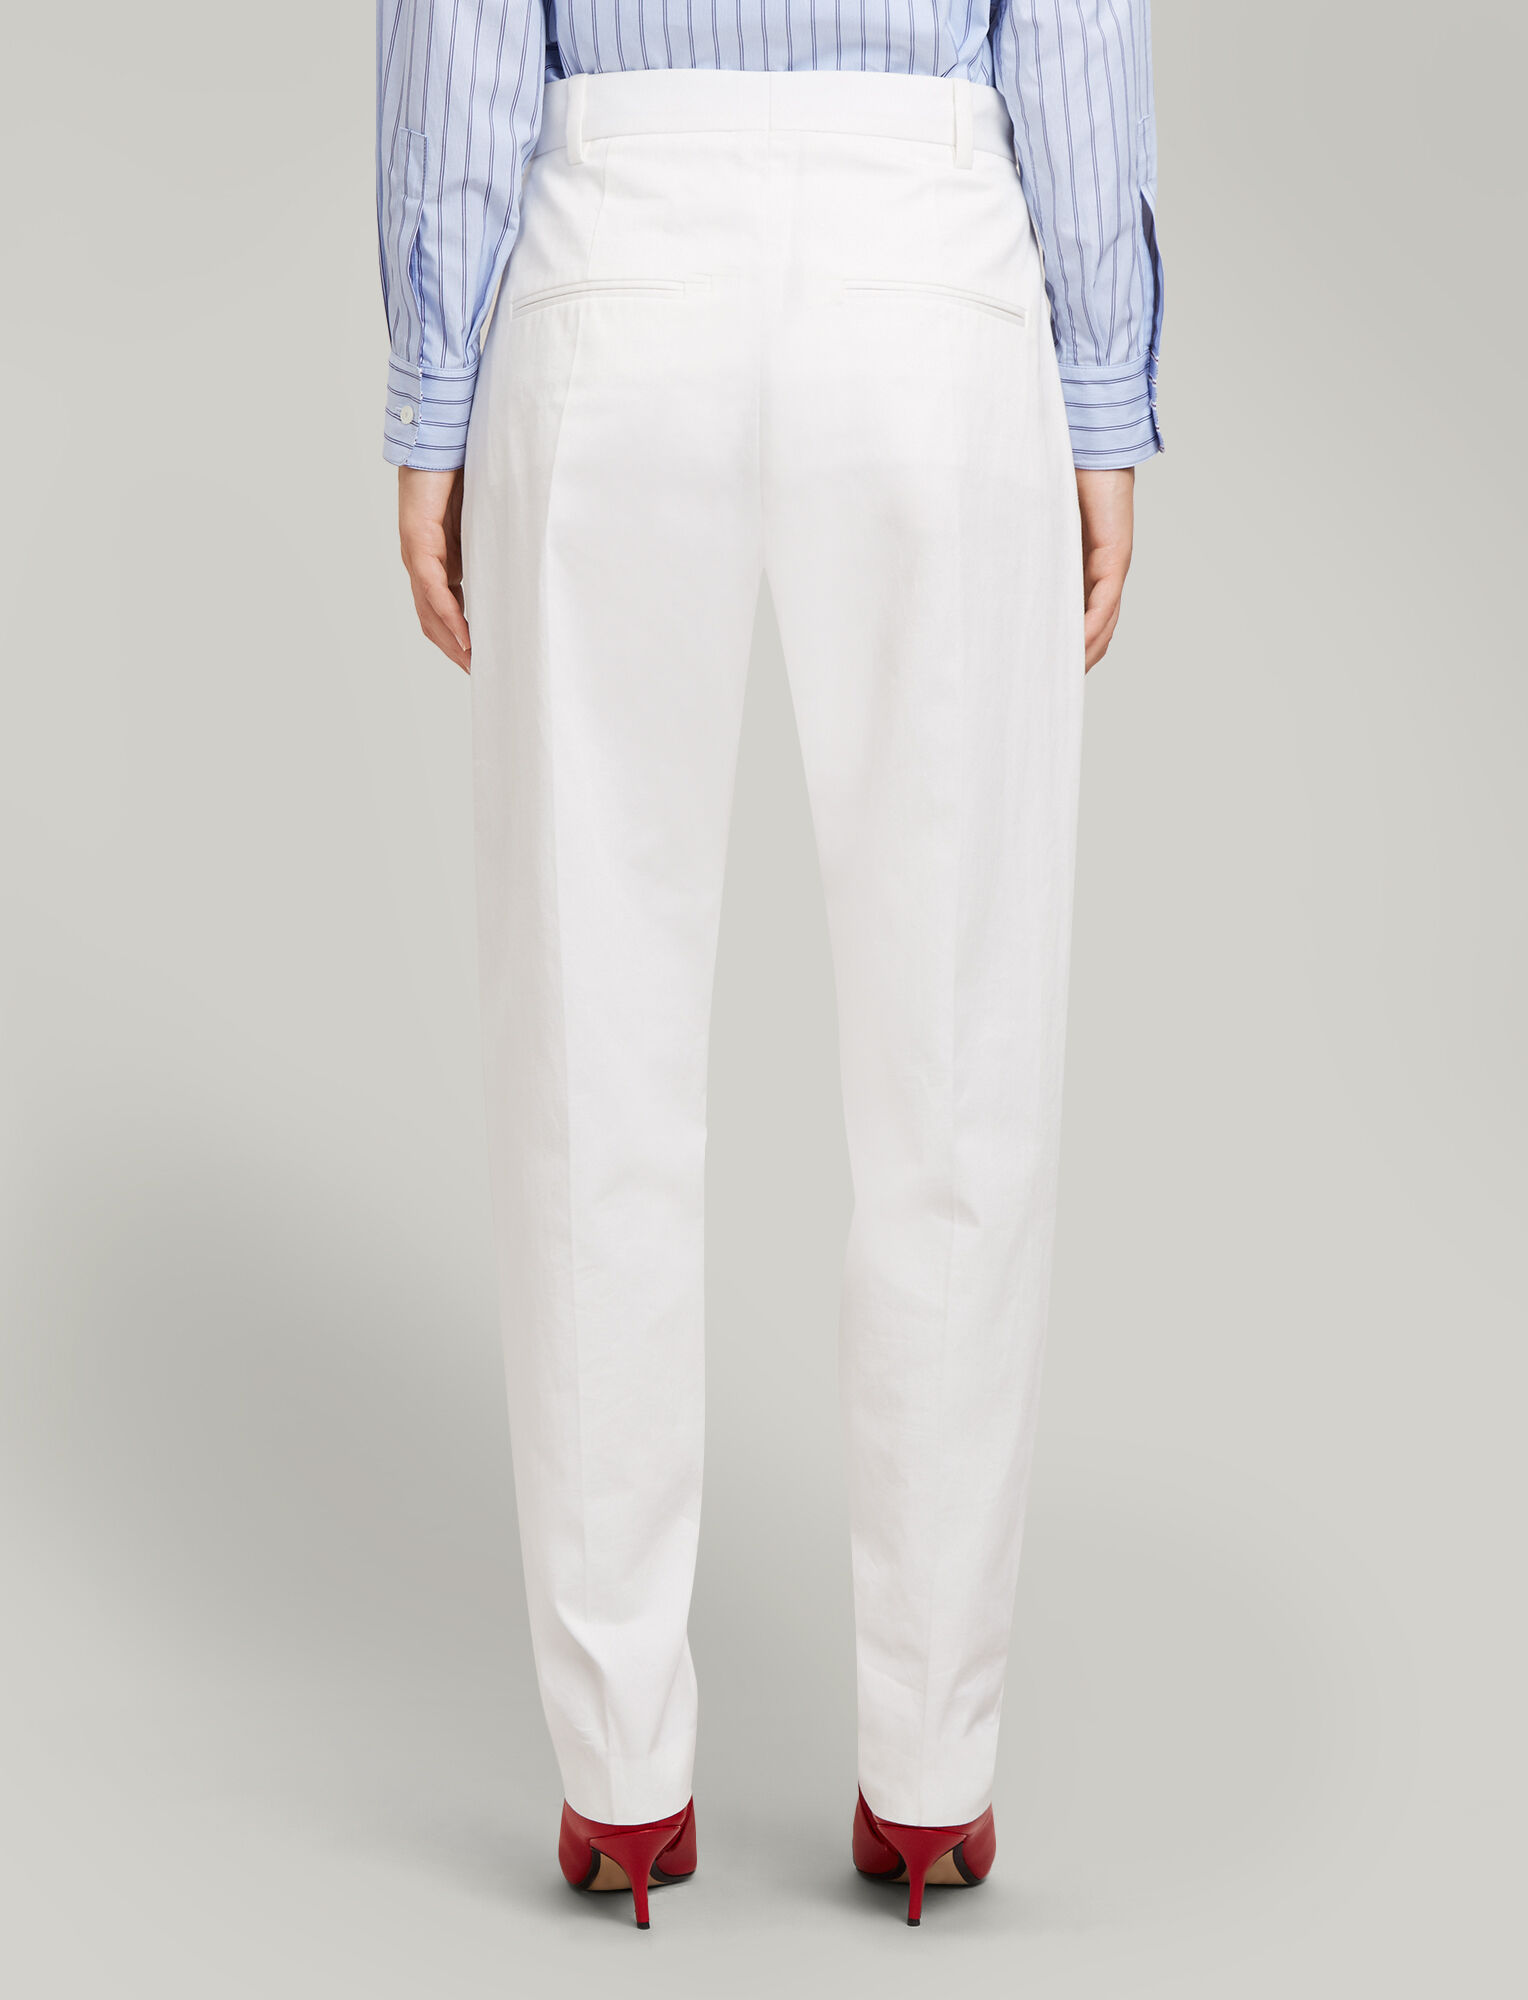 Joseph, Electra Everyday Chino Trousers, in OFF WHITE